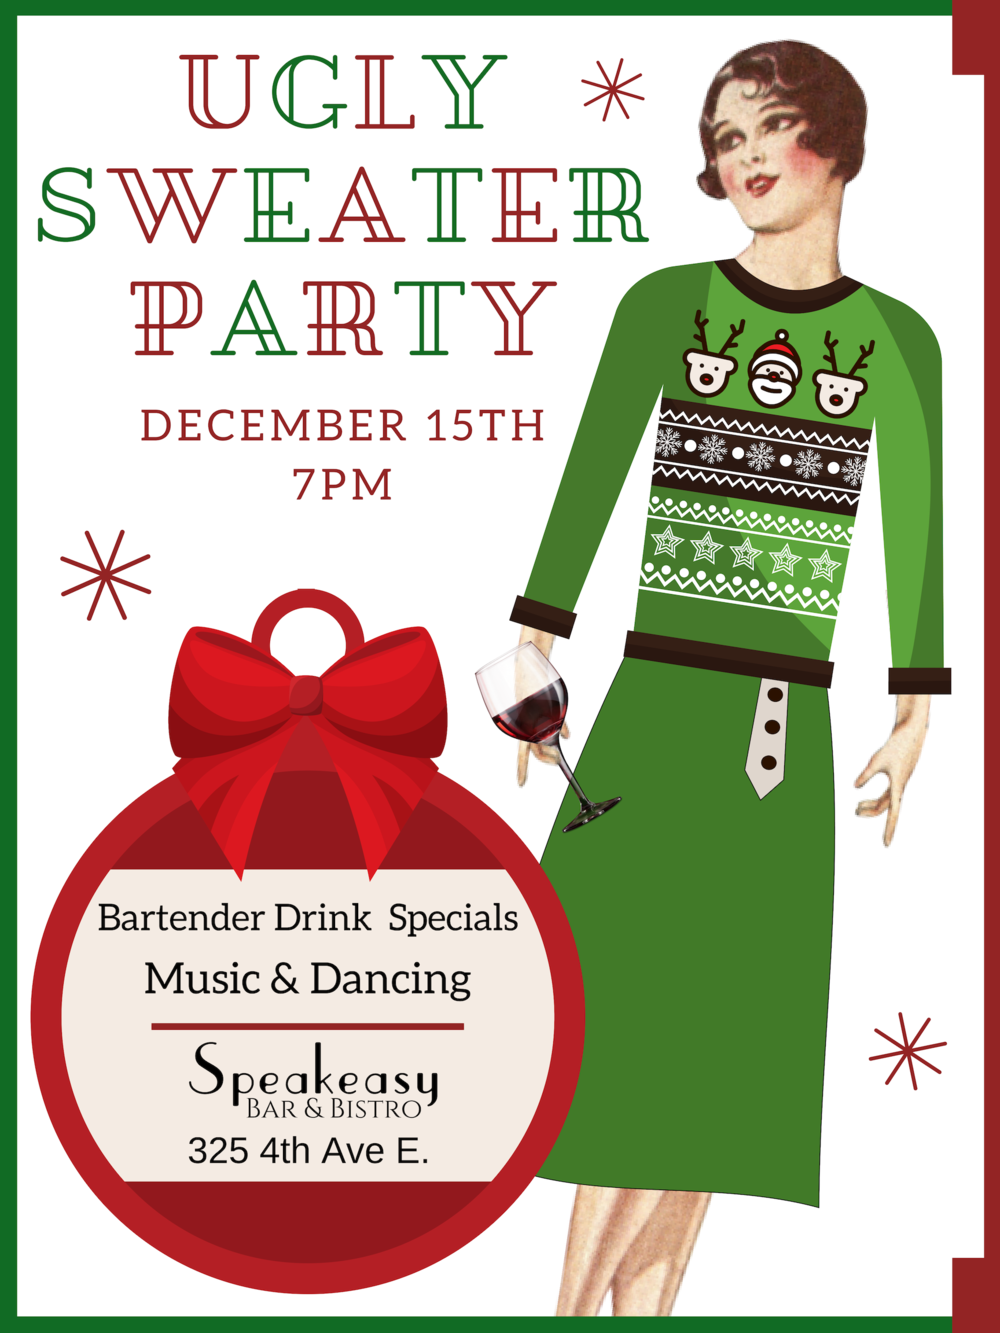 Ugly Sweater Party- Dec 15th.png